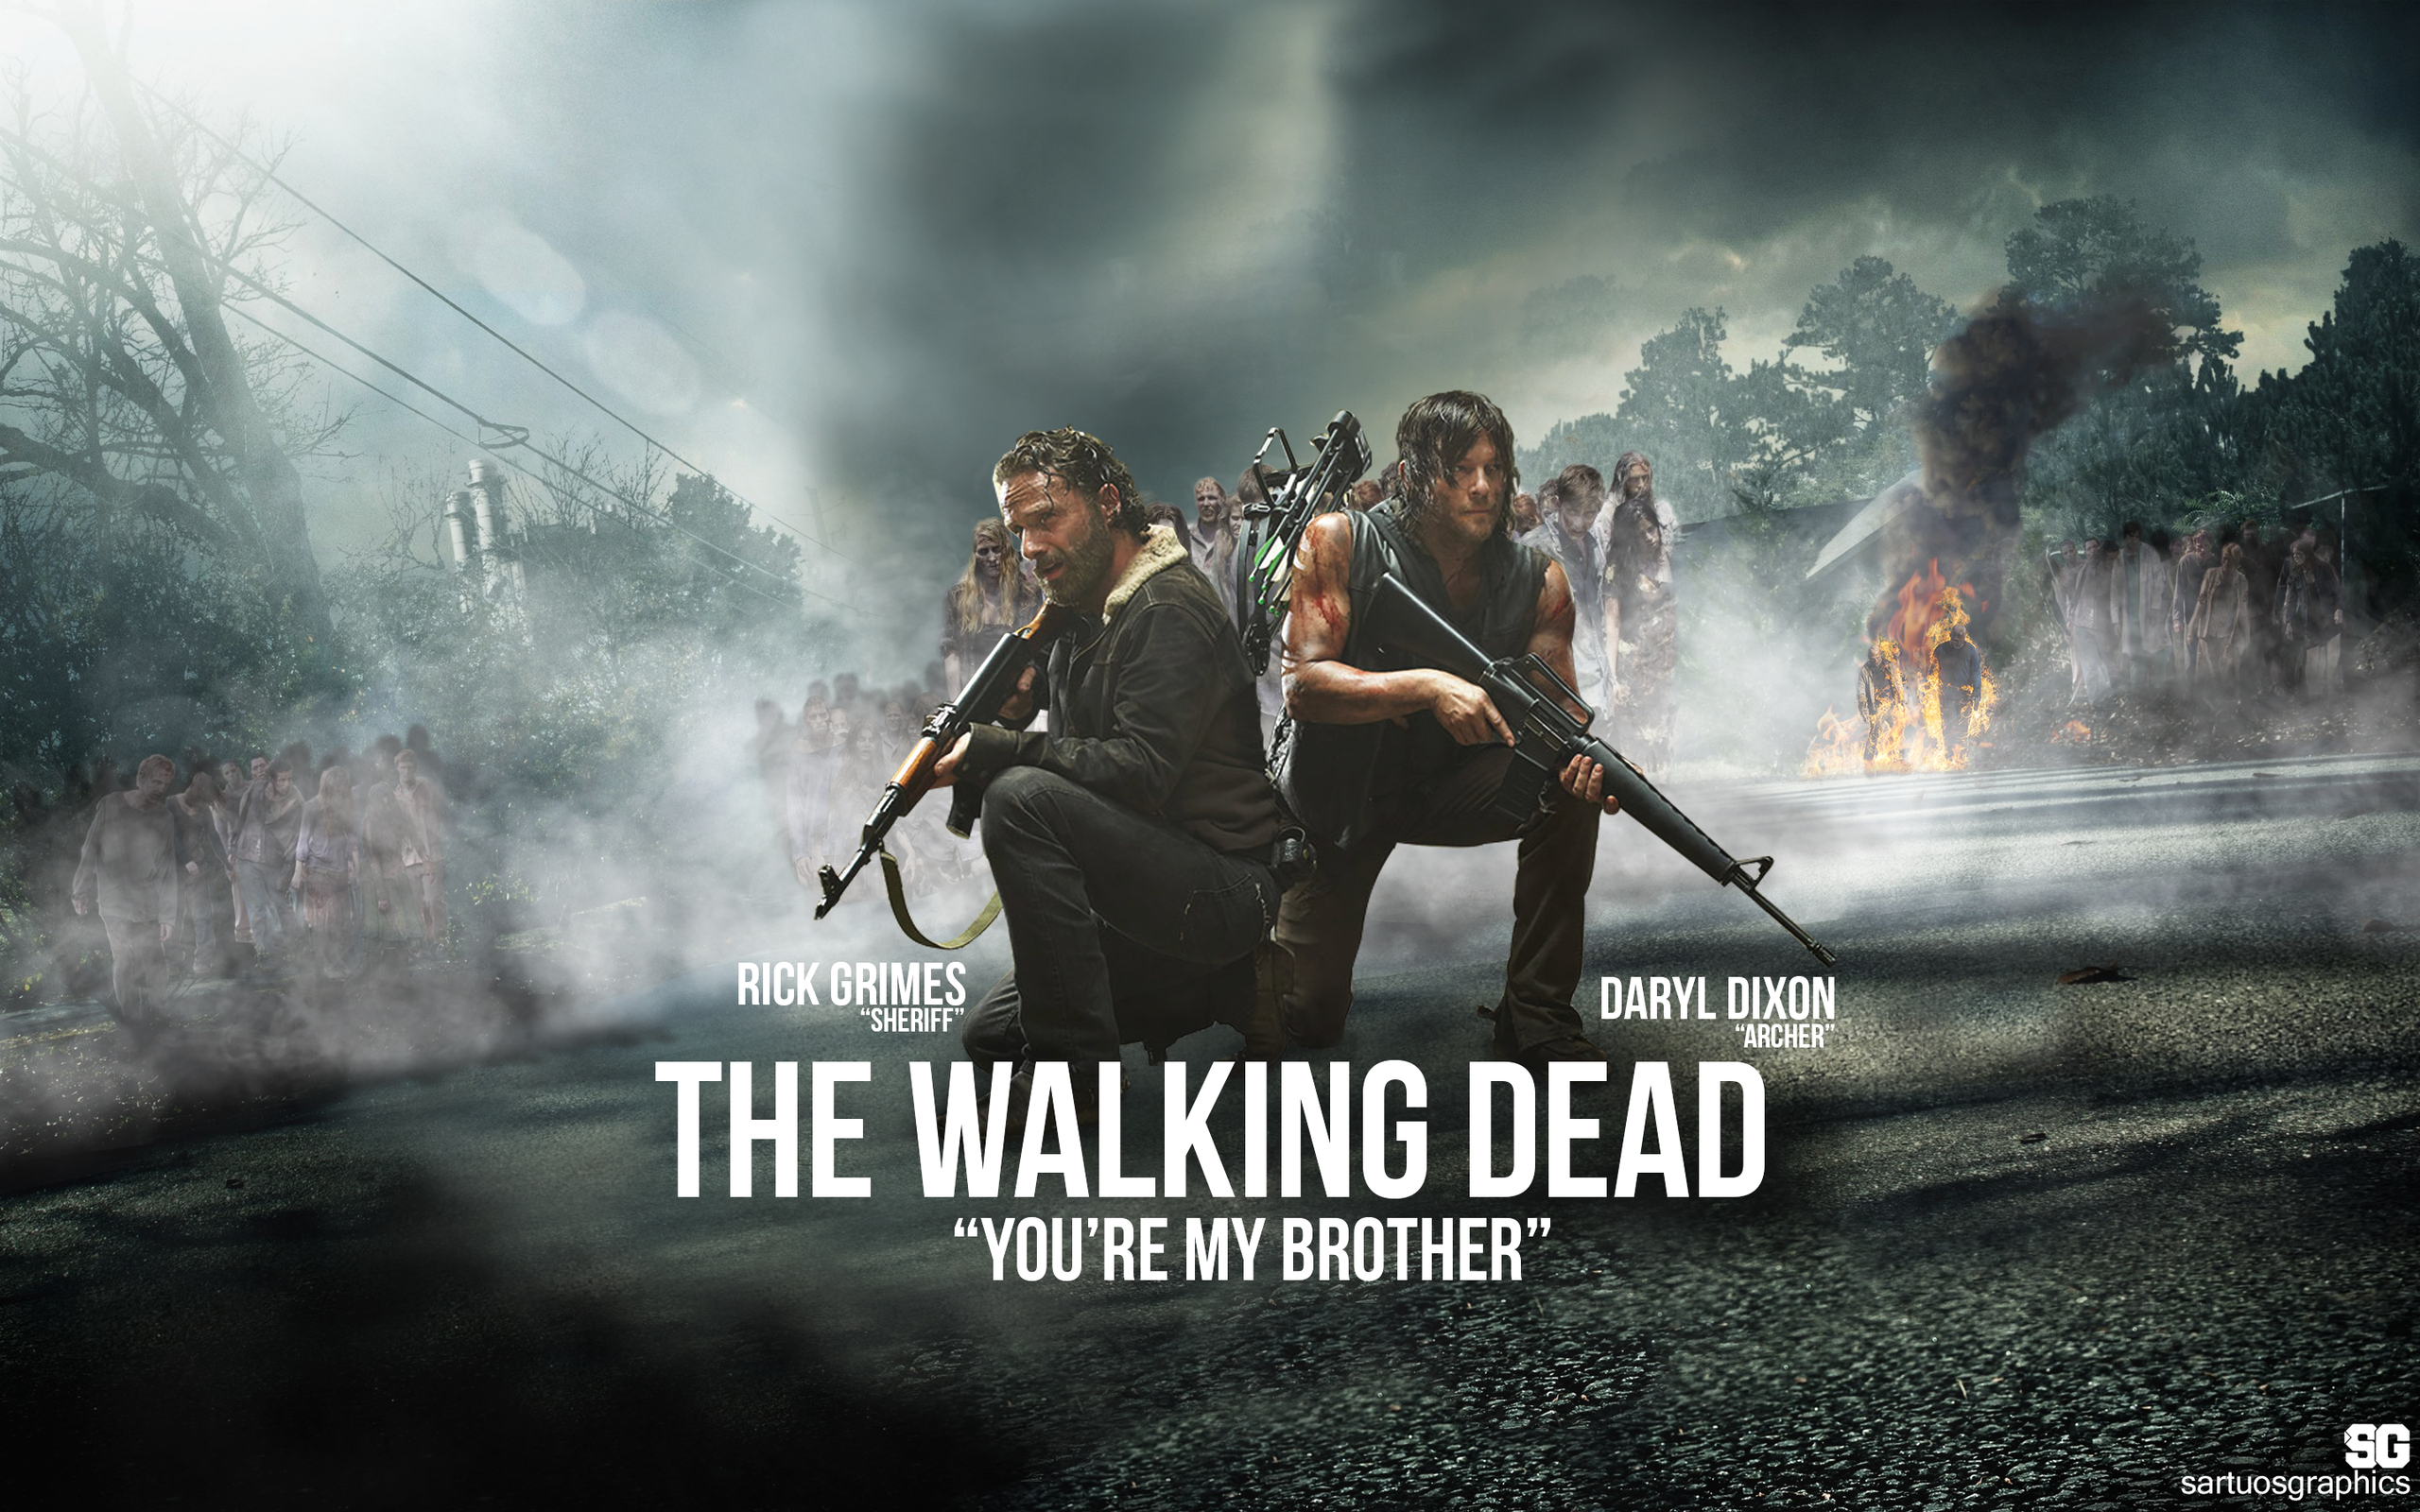 THE WALKING DEAD WALLPAPER(sartuosgraphics)2015